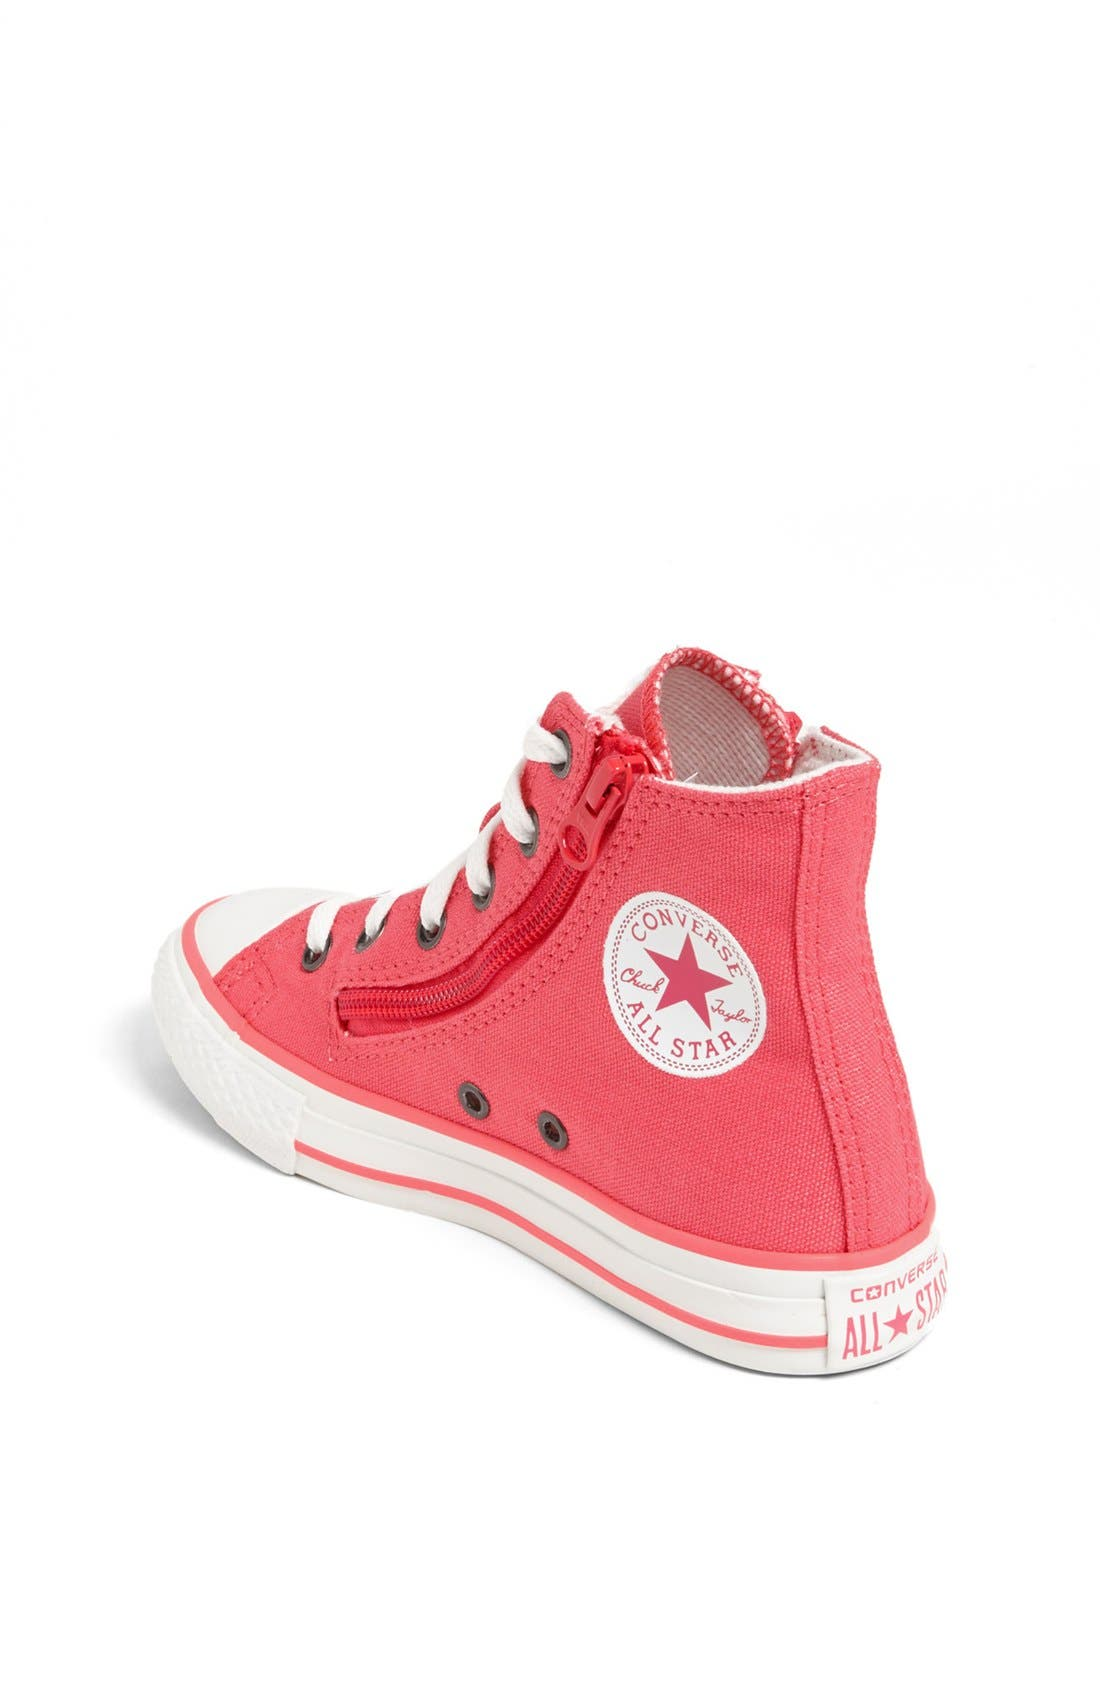 Alternate Image 2  - Converse Chuck Taylor® All Star® High Top Sneaker (Toddler, Little Kid & Big Kid)